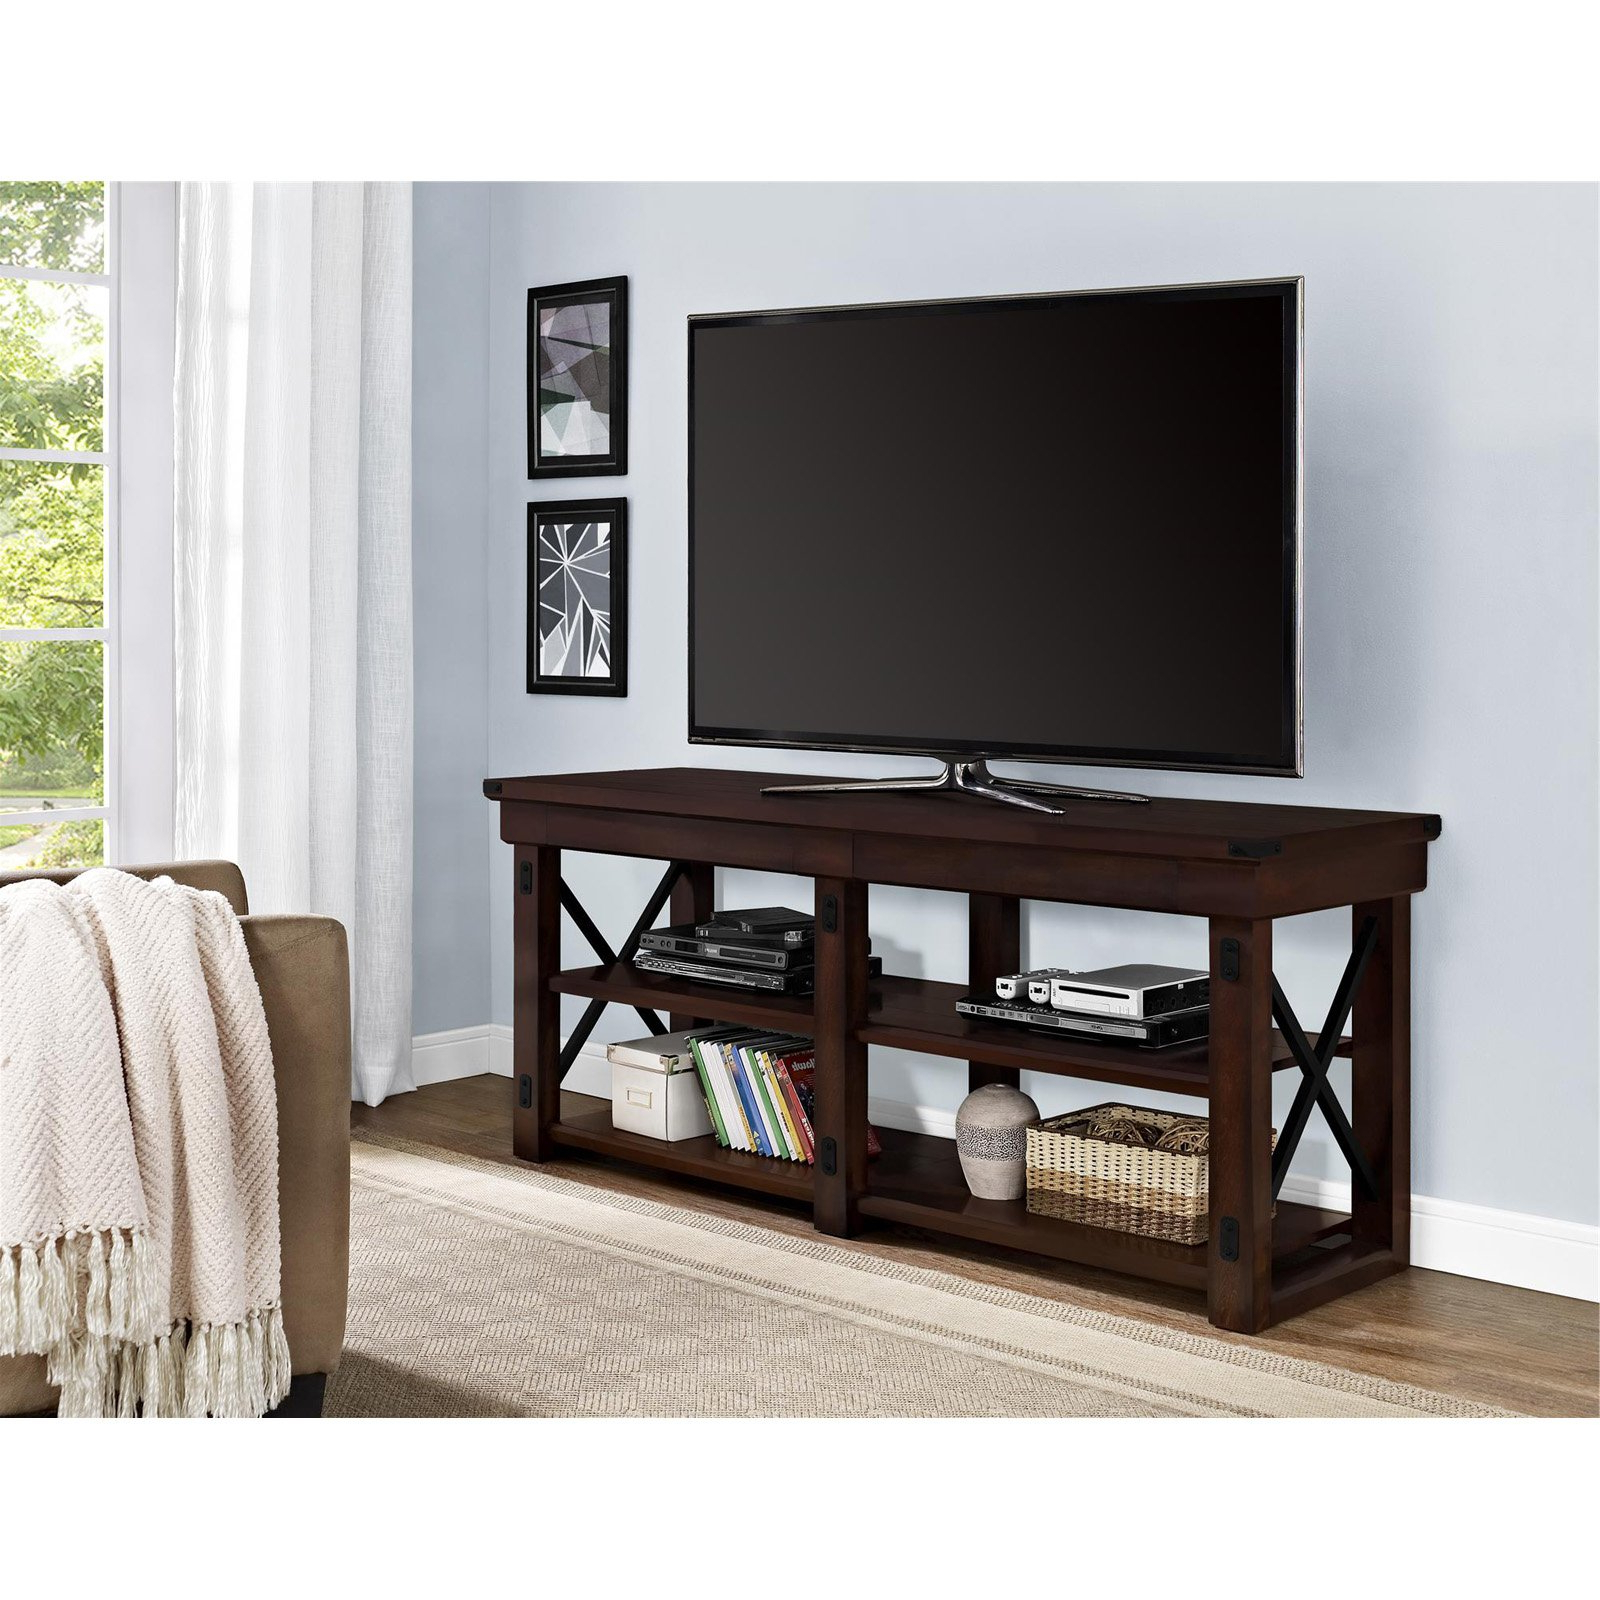 Most Recently Released Ameriwood Home Wildwood Tv Stand For Tvs Up To 65 For Mainstays Tv Stands For Tvs With Multiple Colors (View 6 of 10)